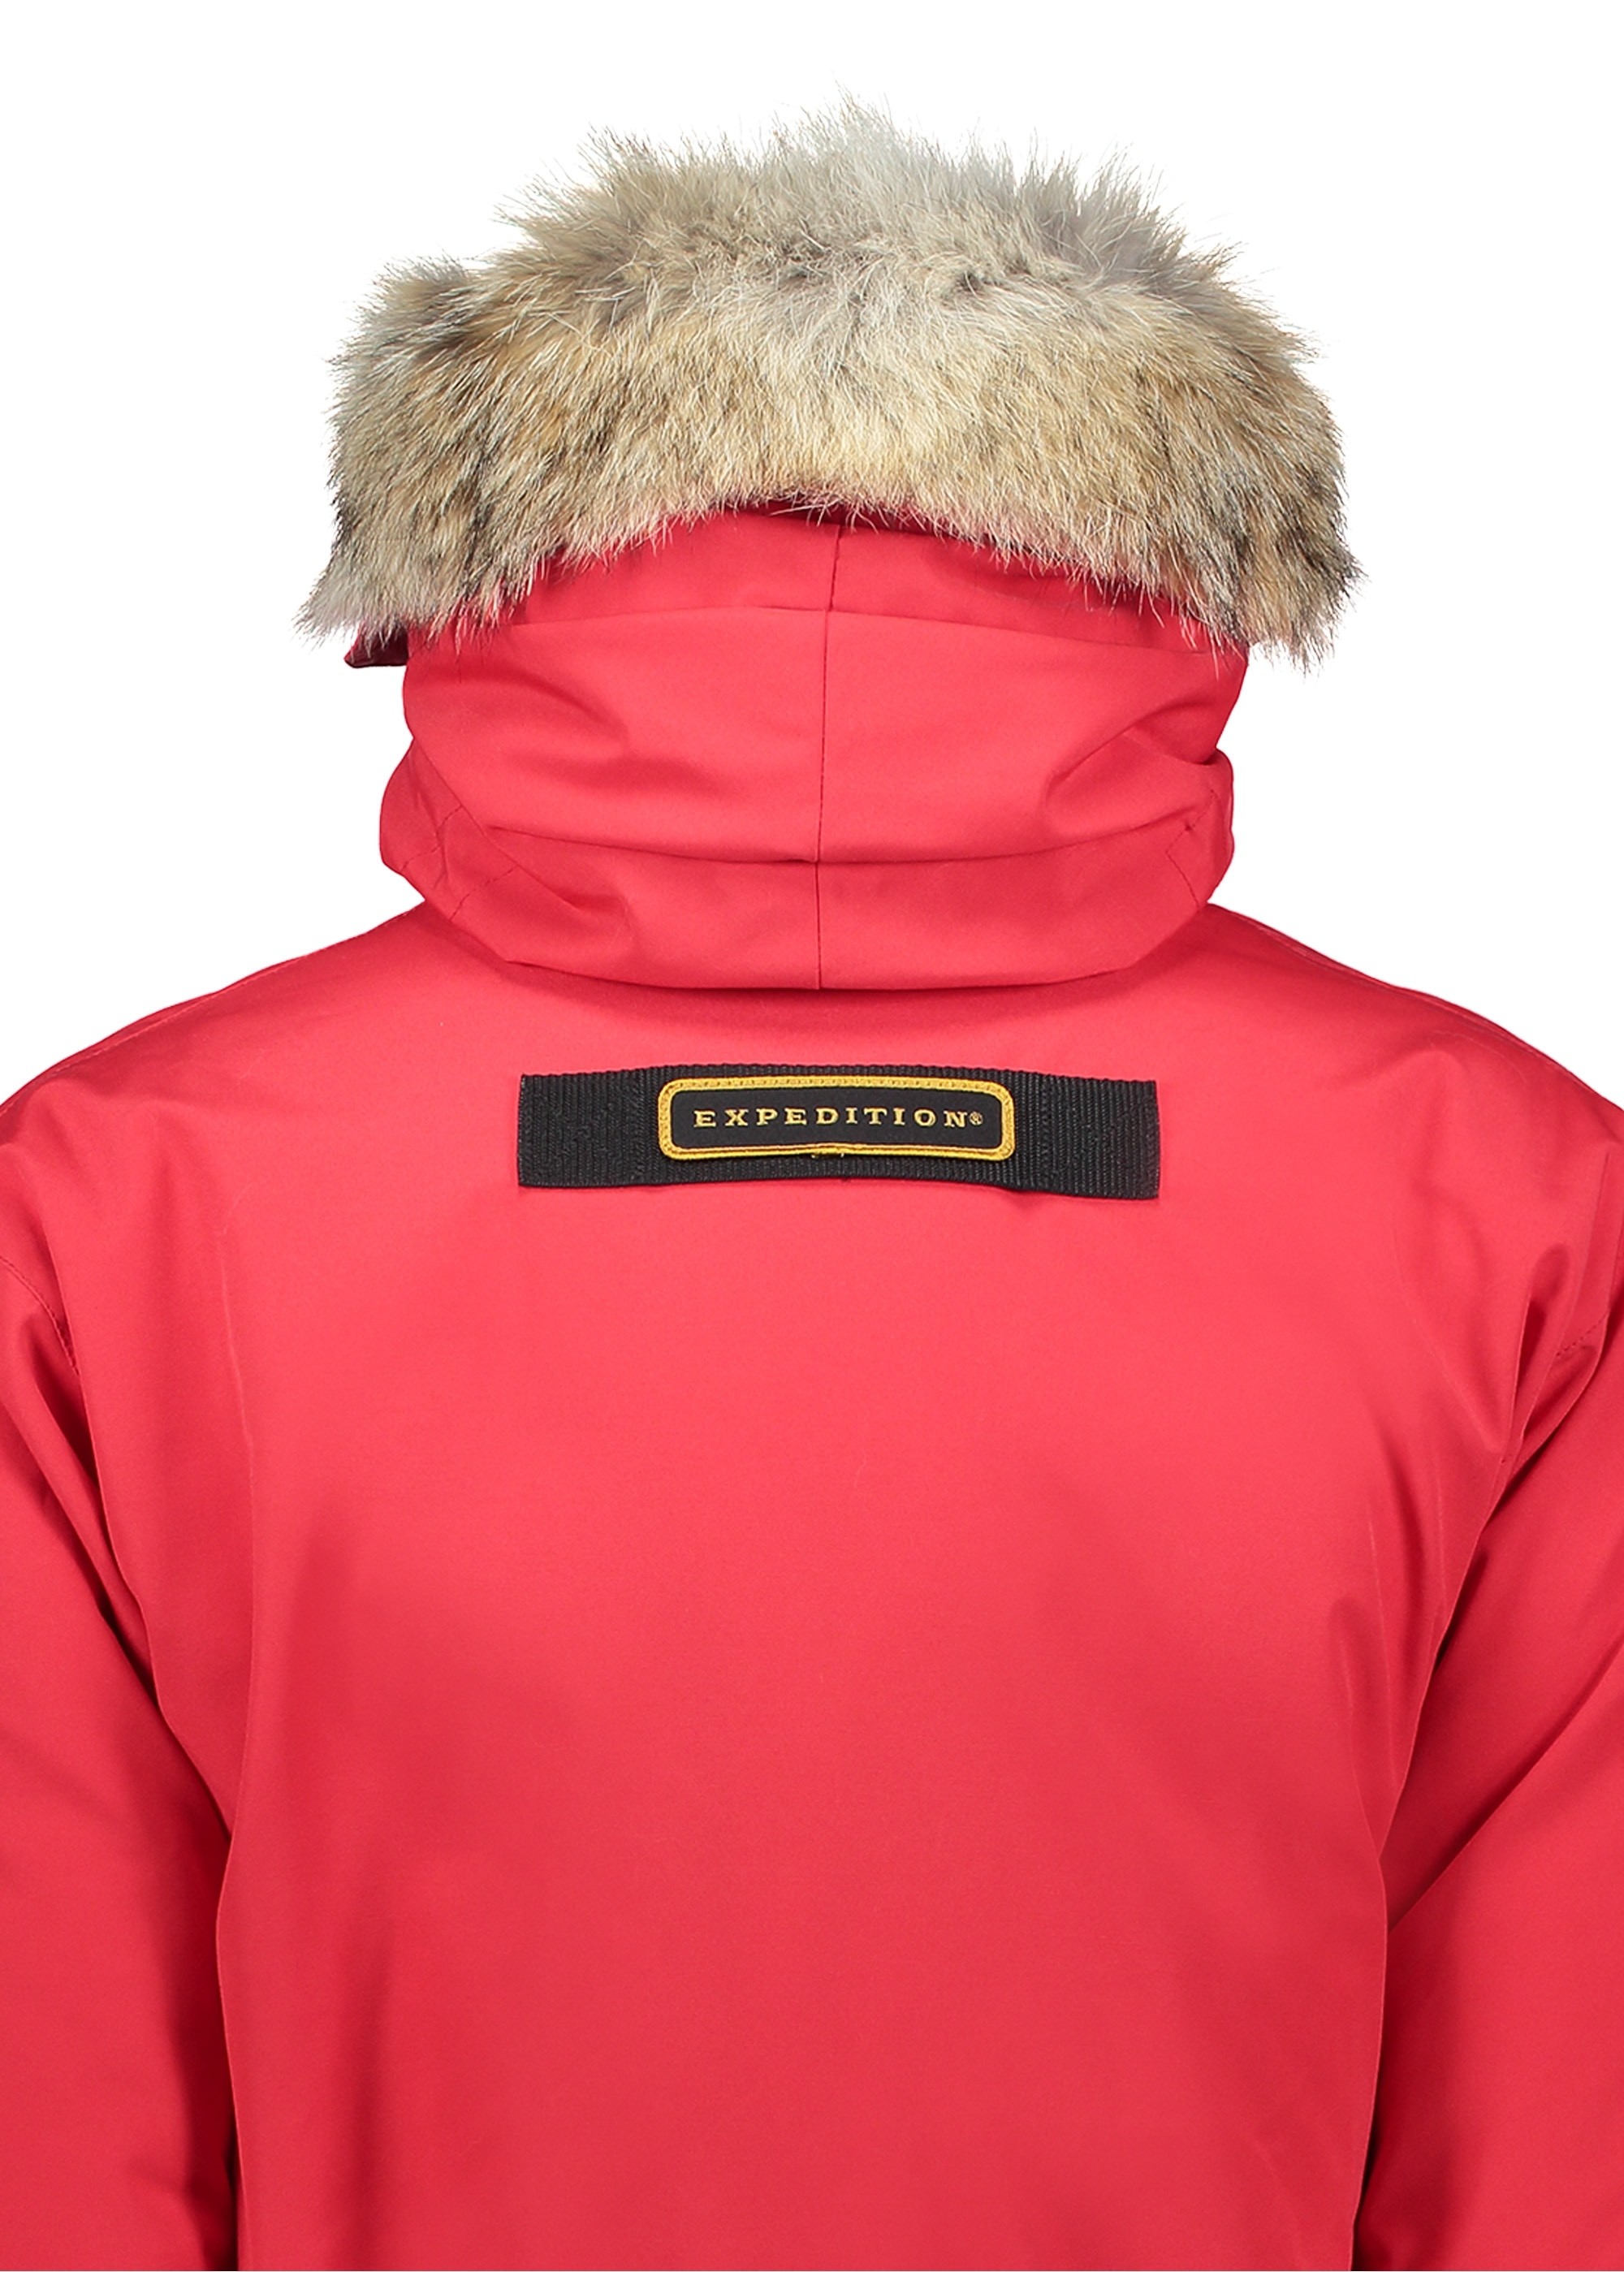 89171847e3e Canada Goose Expedition Parka - Red - Coats from Triads UK